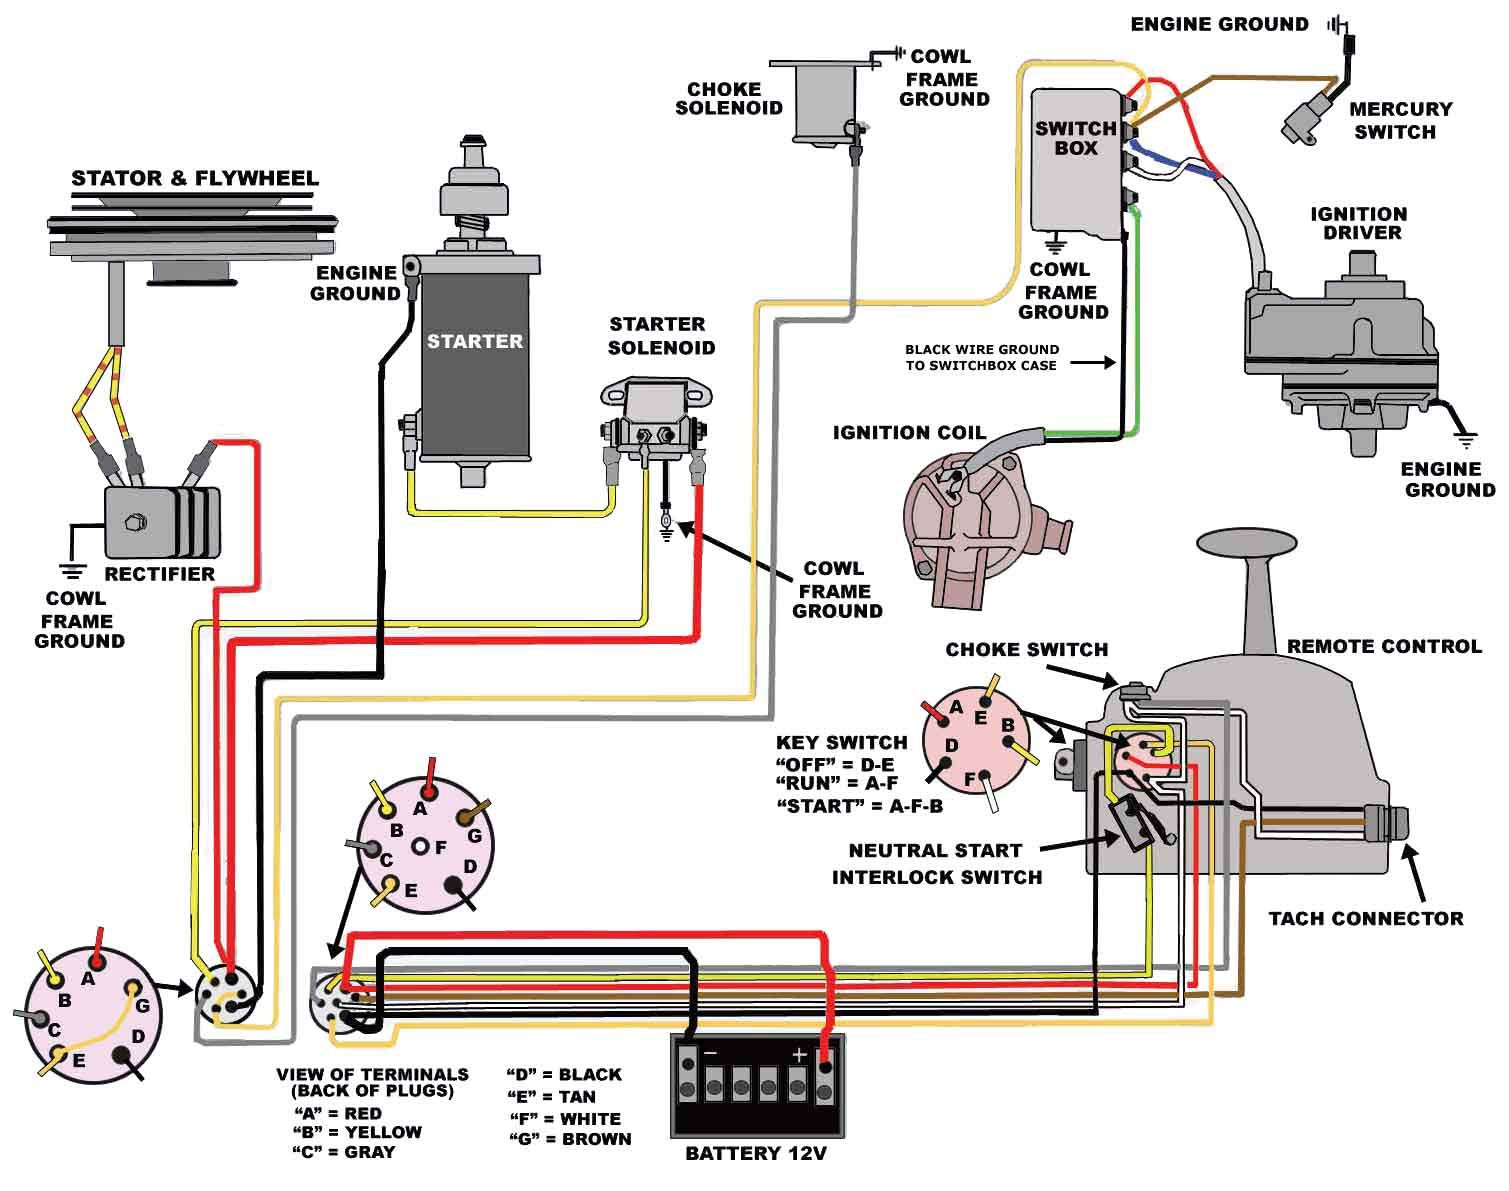 hight resolution of mercury outboard wiring diagram c u0026imercury outboard wiring print 13